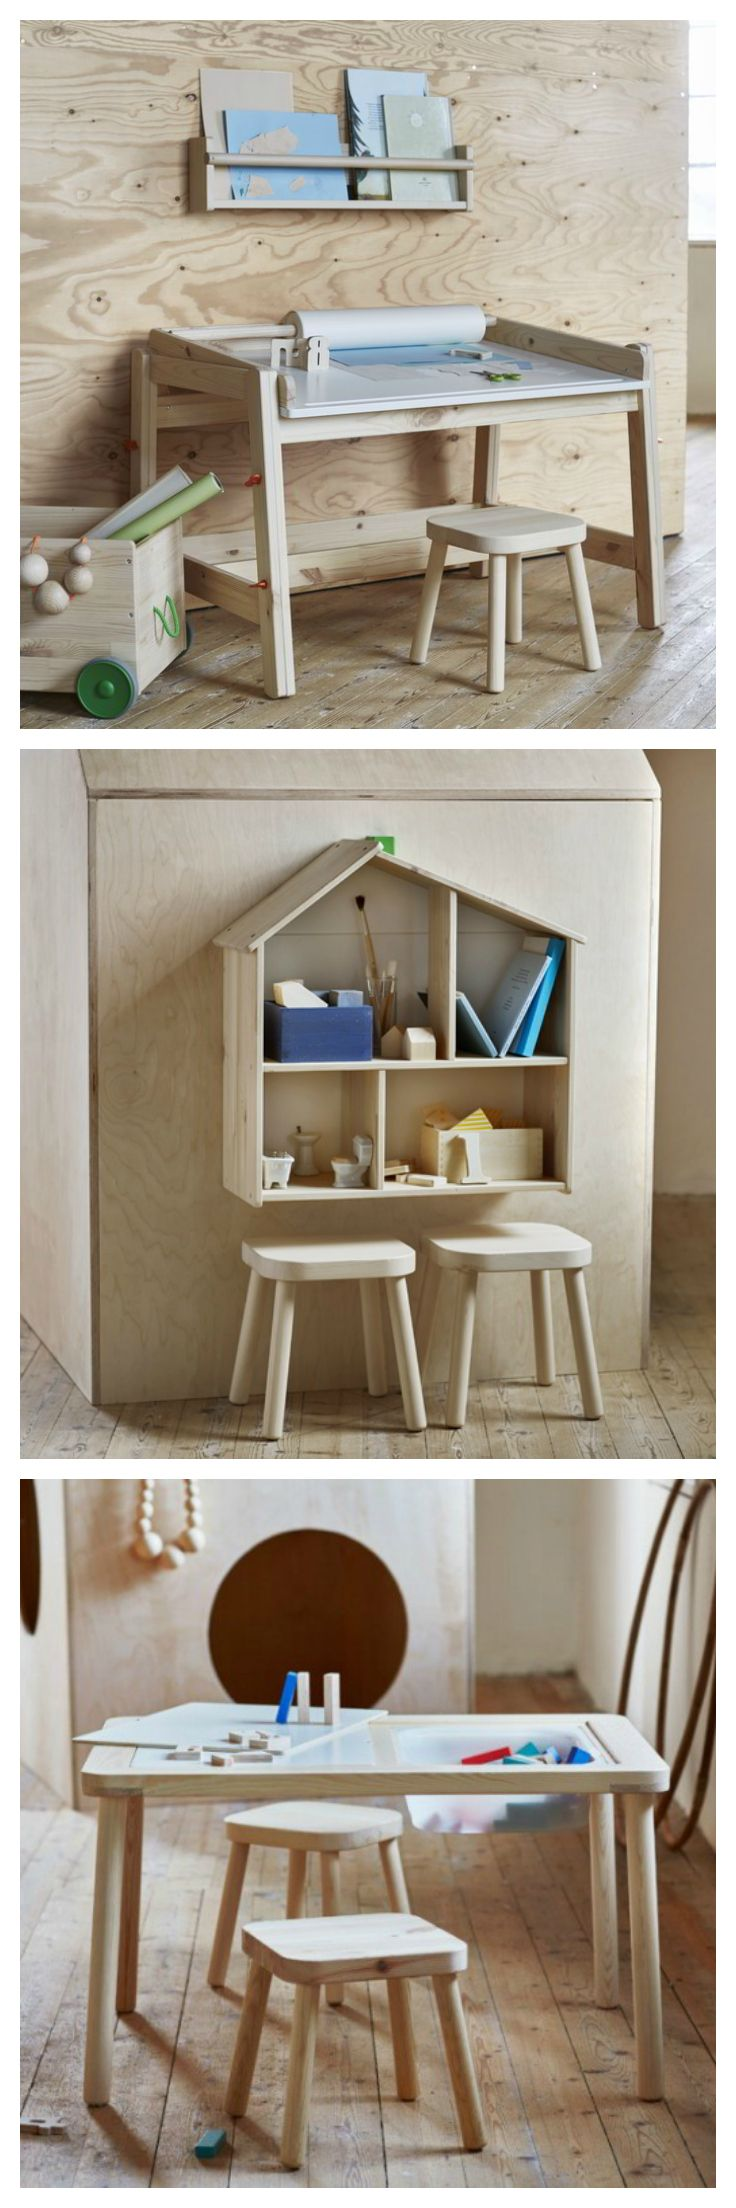 Design Ikea Playroom Ideas best 25 ikea kids playroom ideas on pinterest craft storage and storage